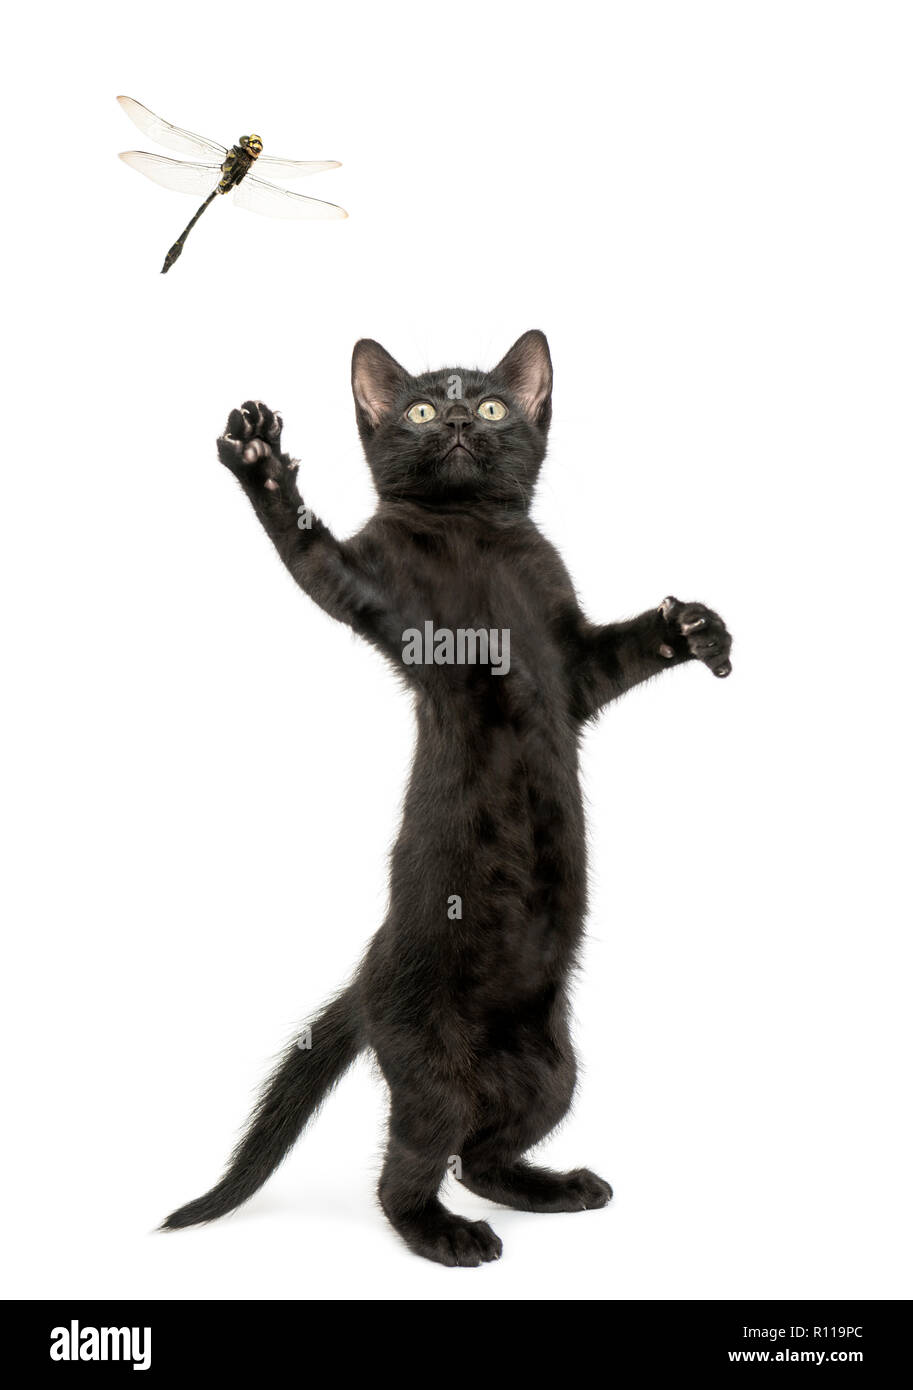 Black kitten standing on hind legs and trying to catch a dragonfly flying - Stock Image